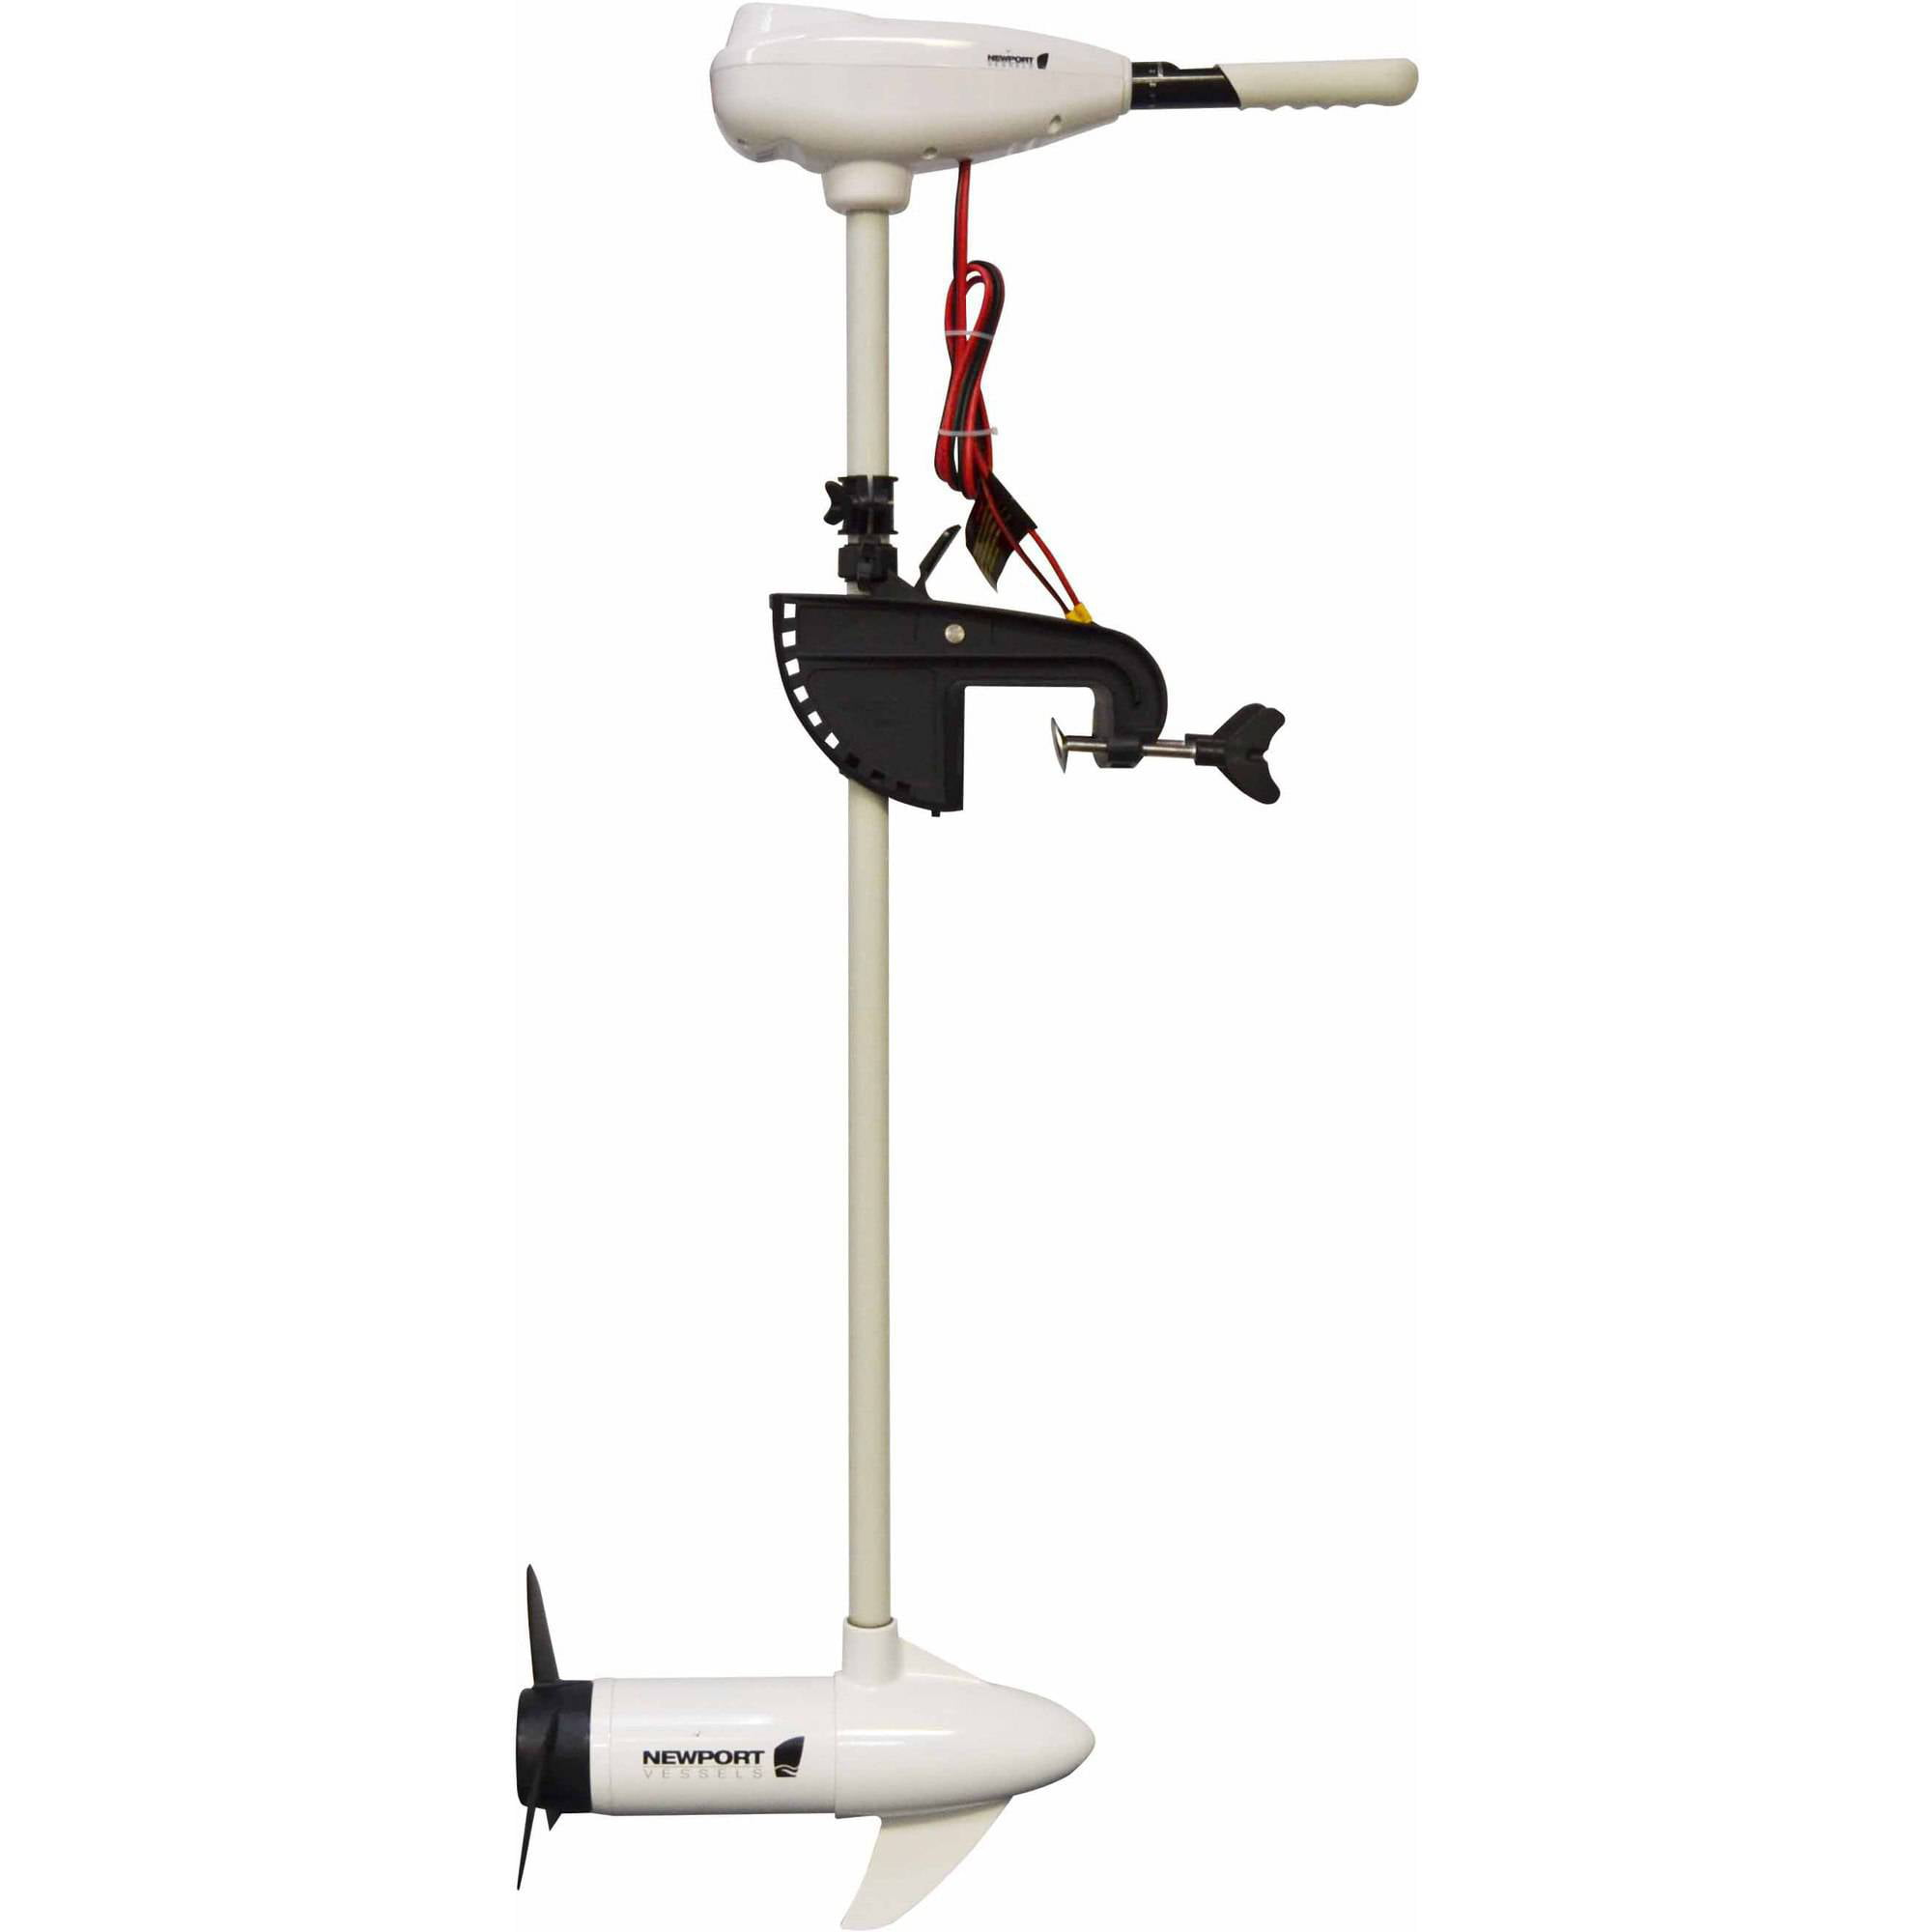 Newport Vessels 86-Pound Thrust Trolling Motor, Saltwater, 24V by Newport Vessels